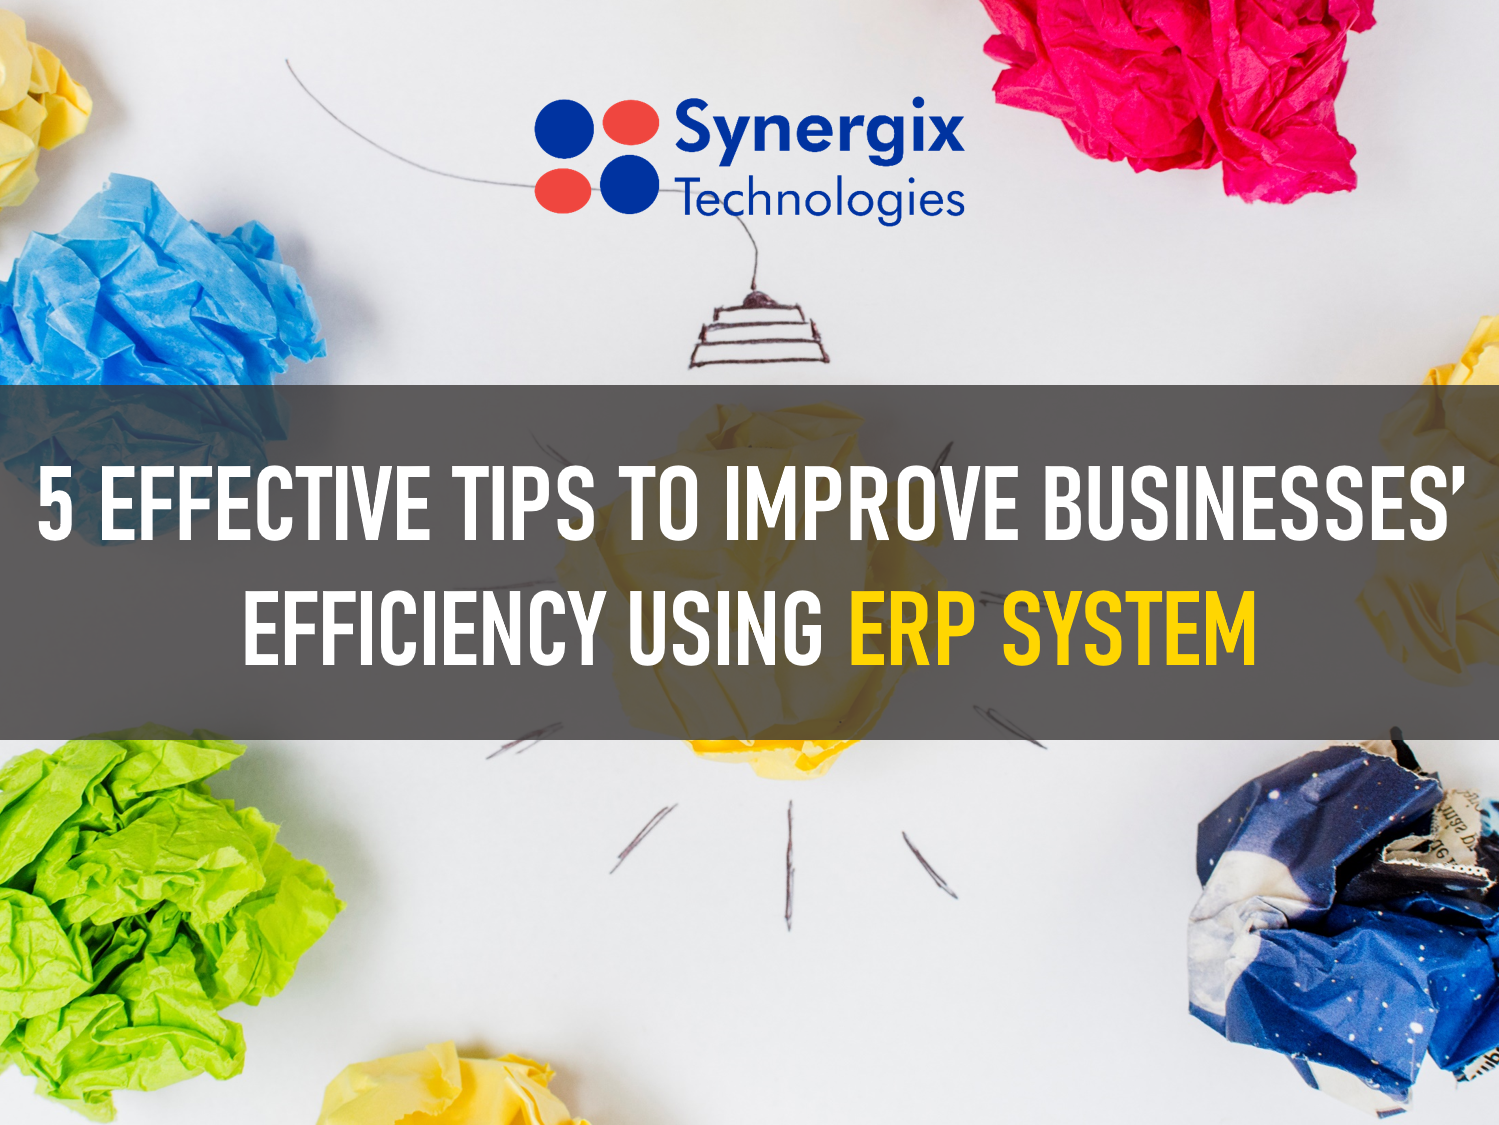 5 Effective Tips for Improving Businesses' Efficiency Using ERP System